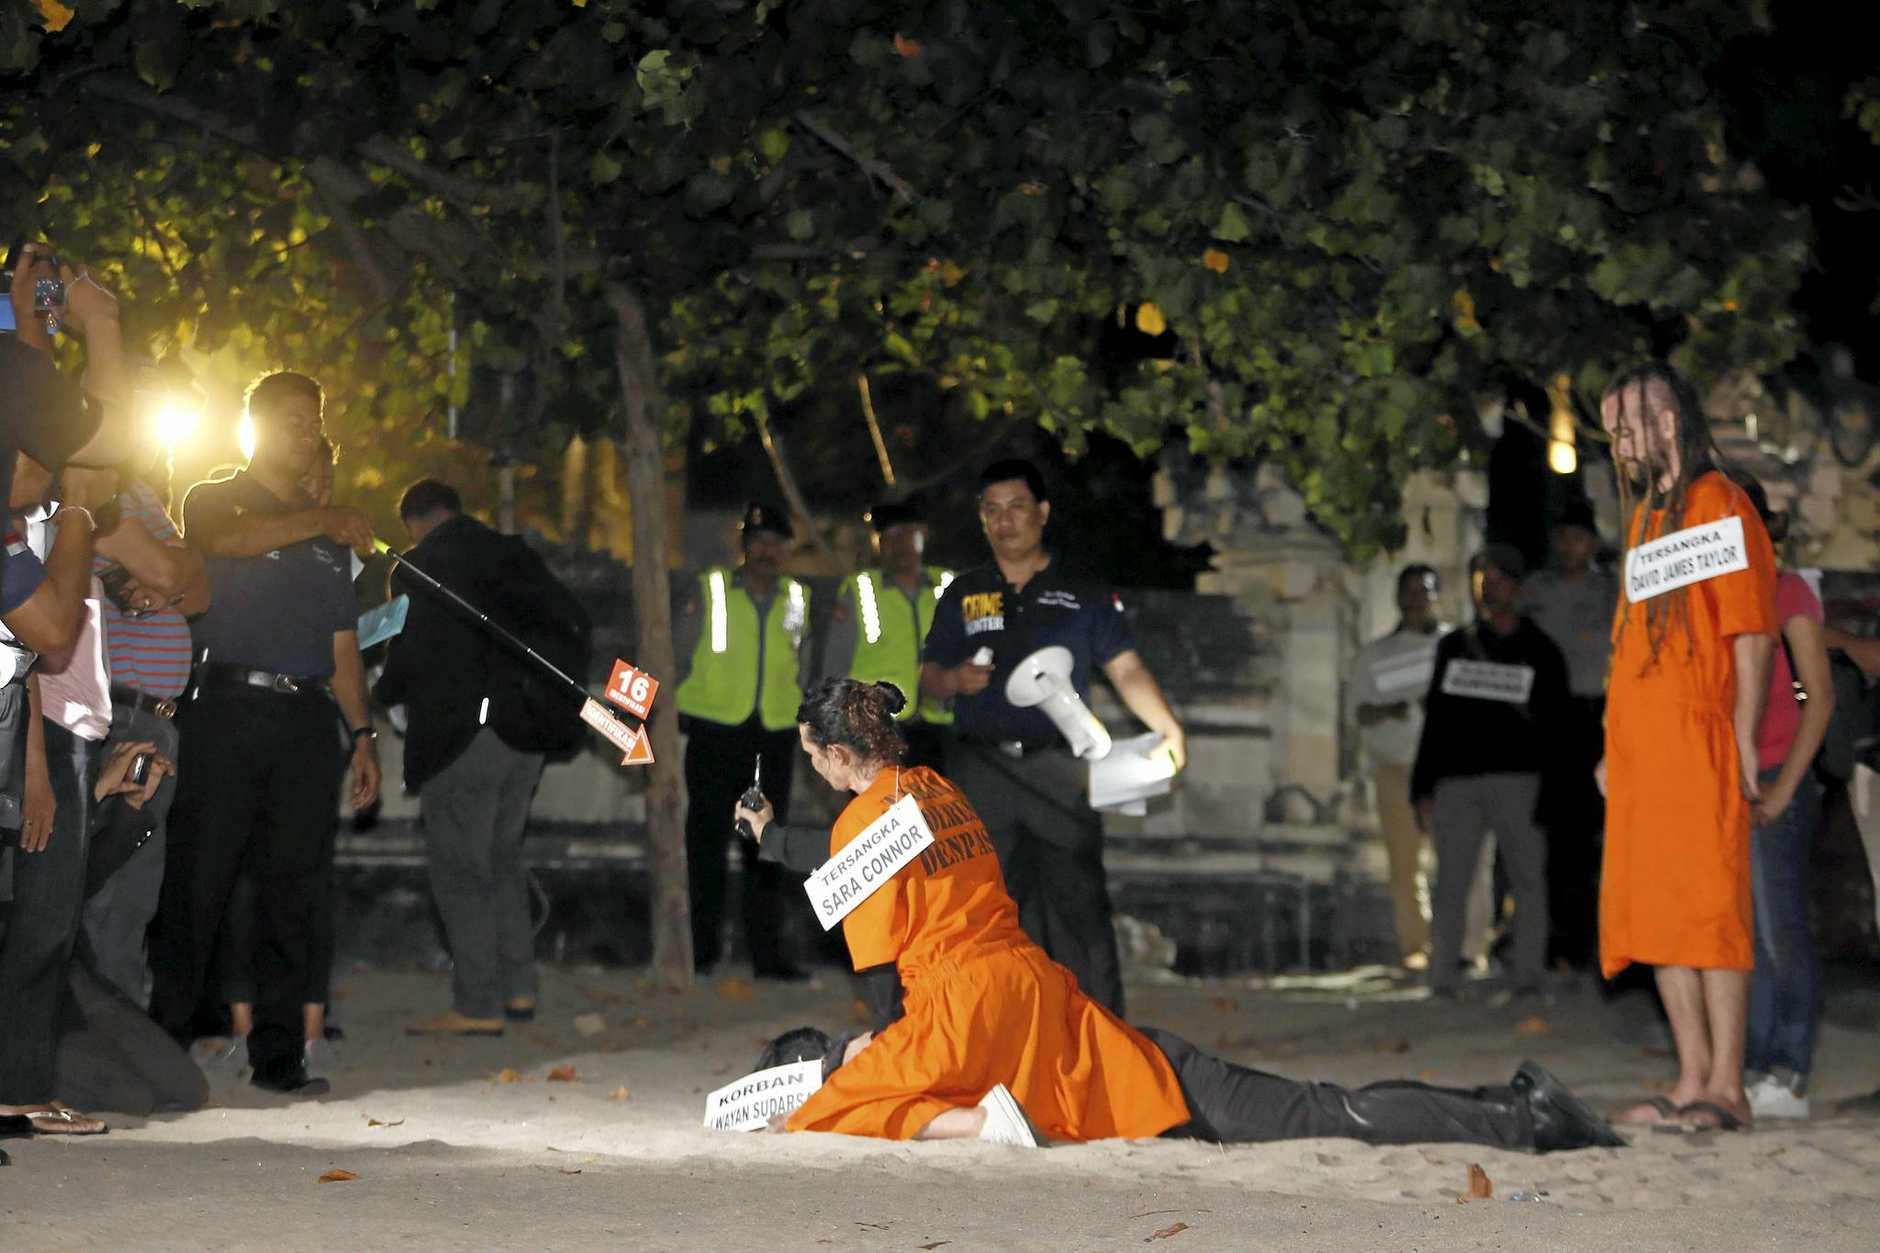 epa05516075 Australian national Sara Connor (C) and British national David Taylor (R)participate in the reconstruction of the death of a police officer at Kuta beach in Bali, Indonesia, 31 August 2016. Australian Sara Connor and British national David Taylor, were arrested by Bali police, and are accused of murdering a local policeman on Kuta Beach. The body of police officer Wayan Sudarsa was found with deep wounds to his head and neck on Kuta beach on 17 August 2016.  EPA/MADE NAGI